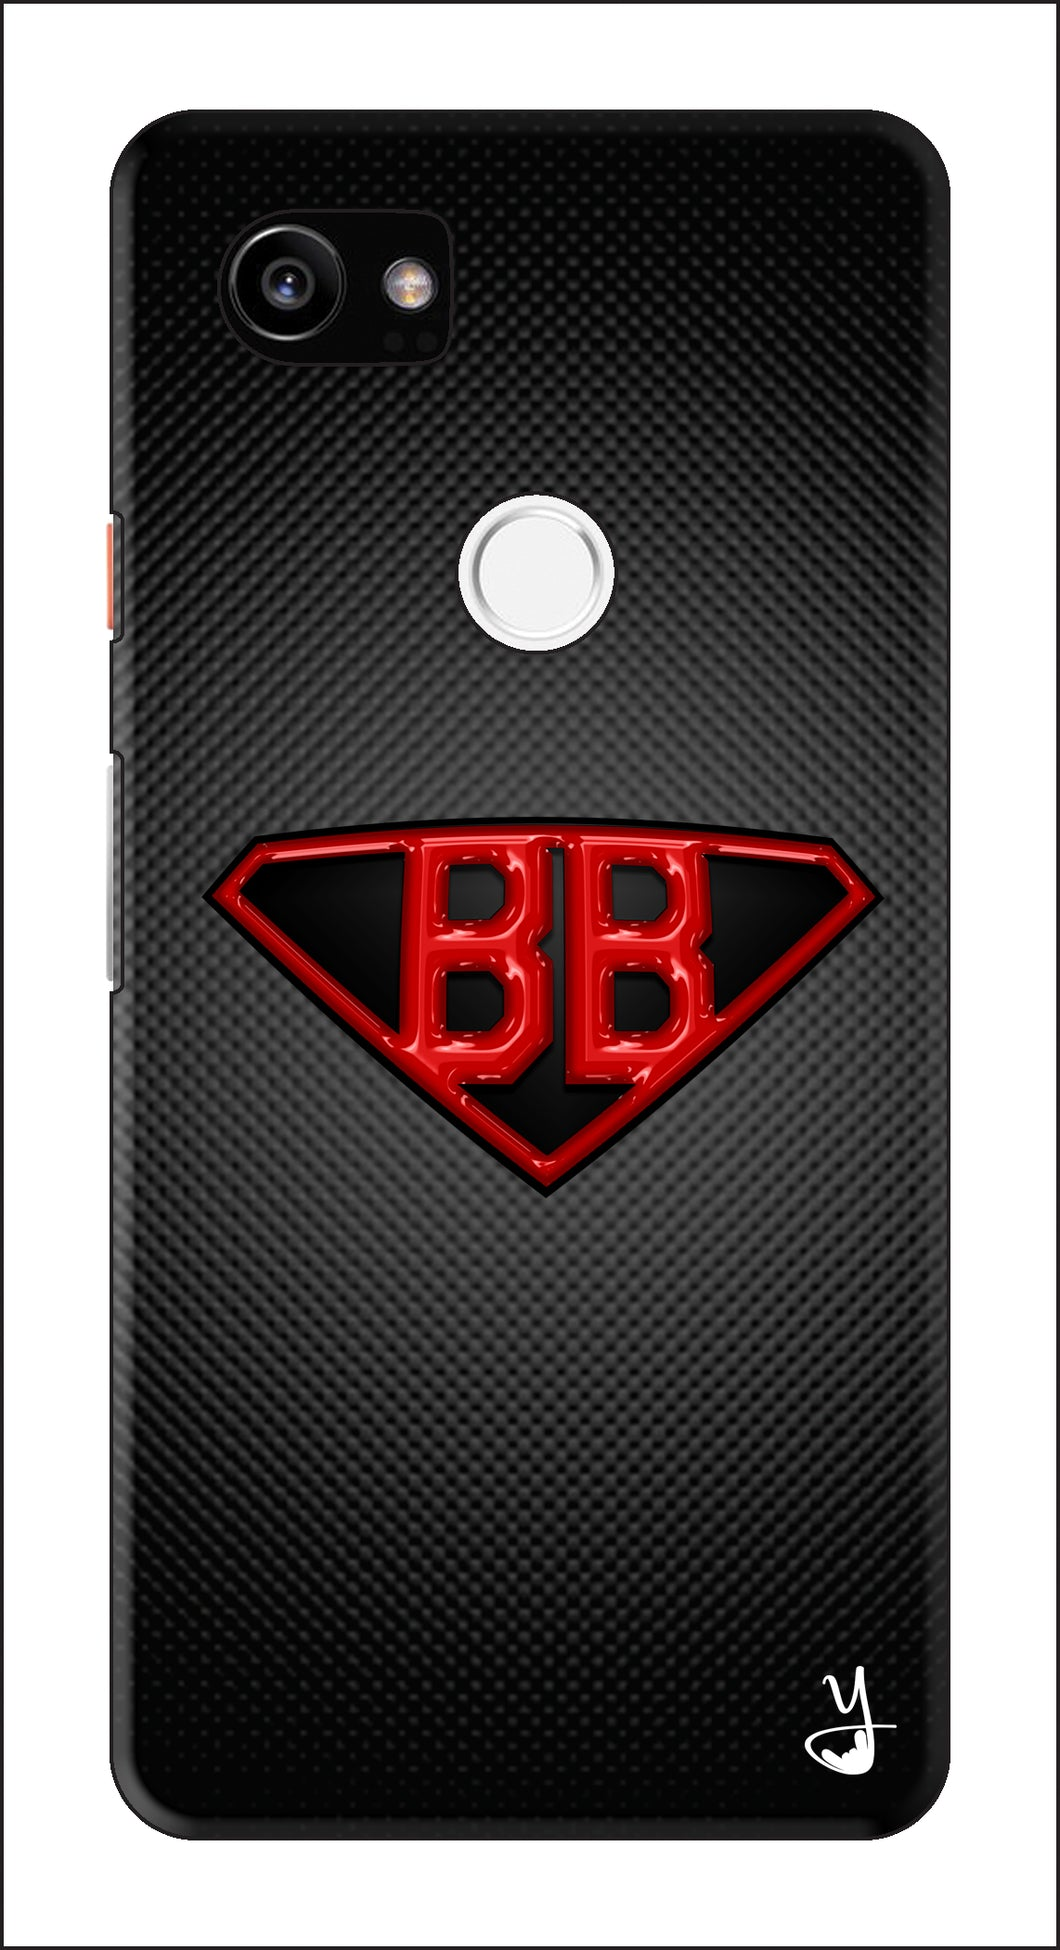 BB Super Hero Edition for Google Pixel 2 XL